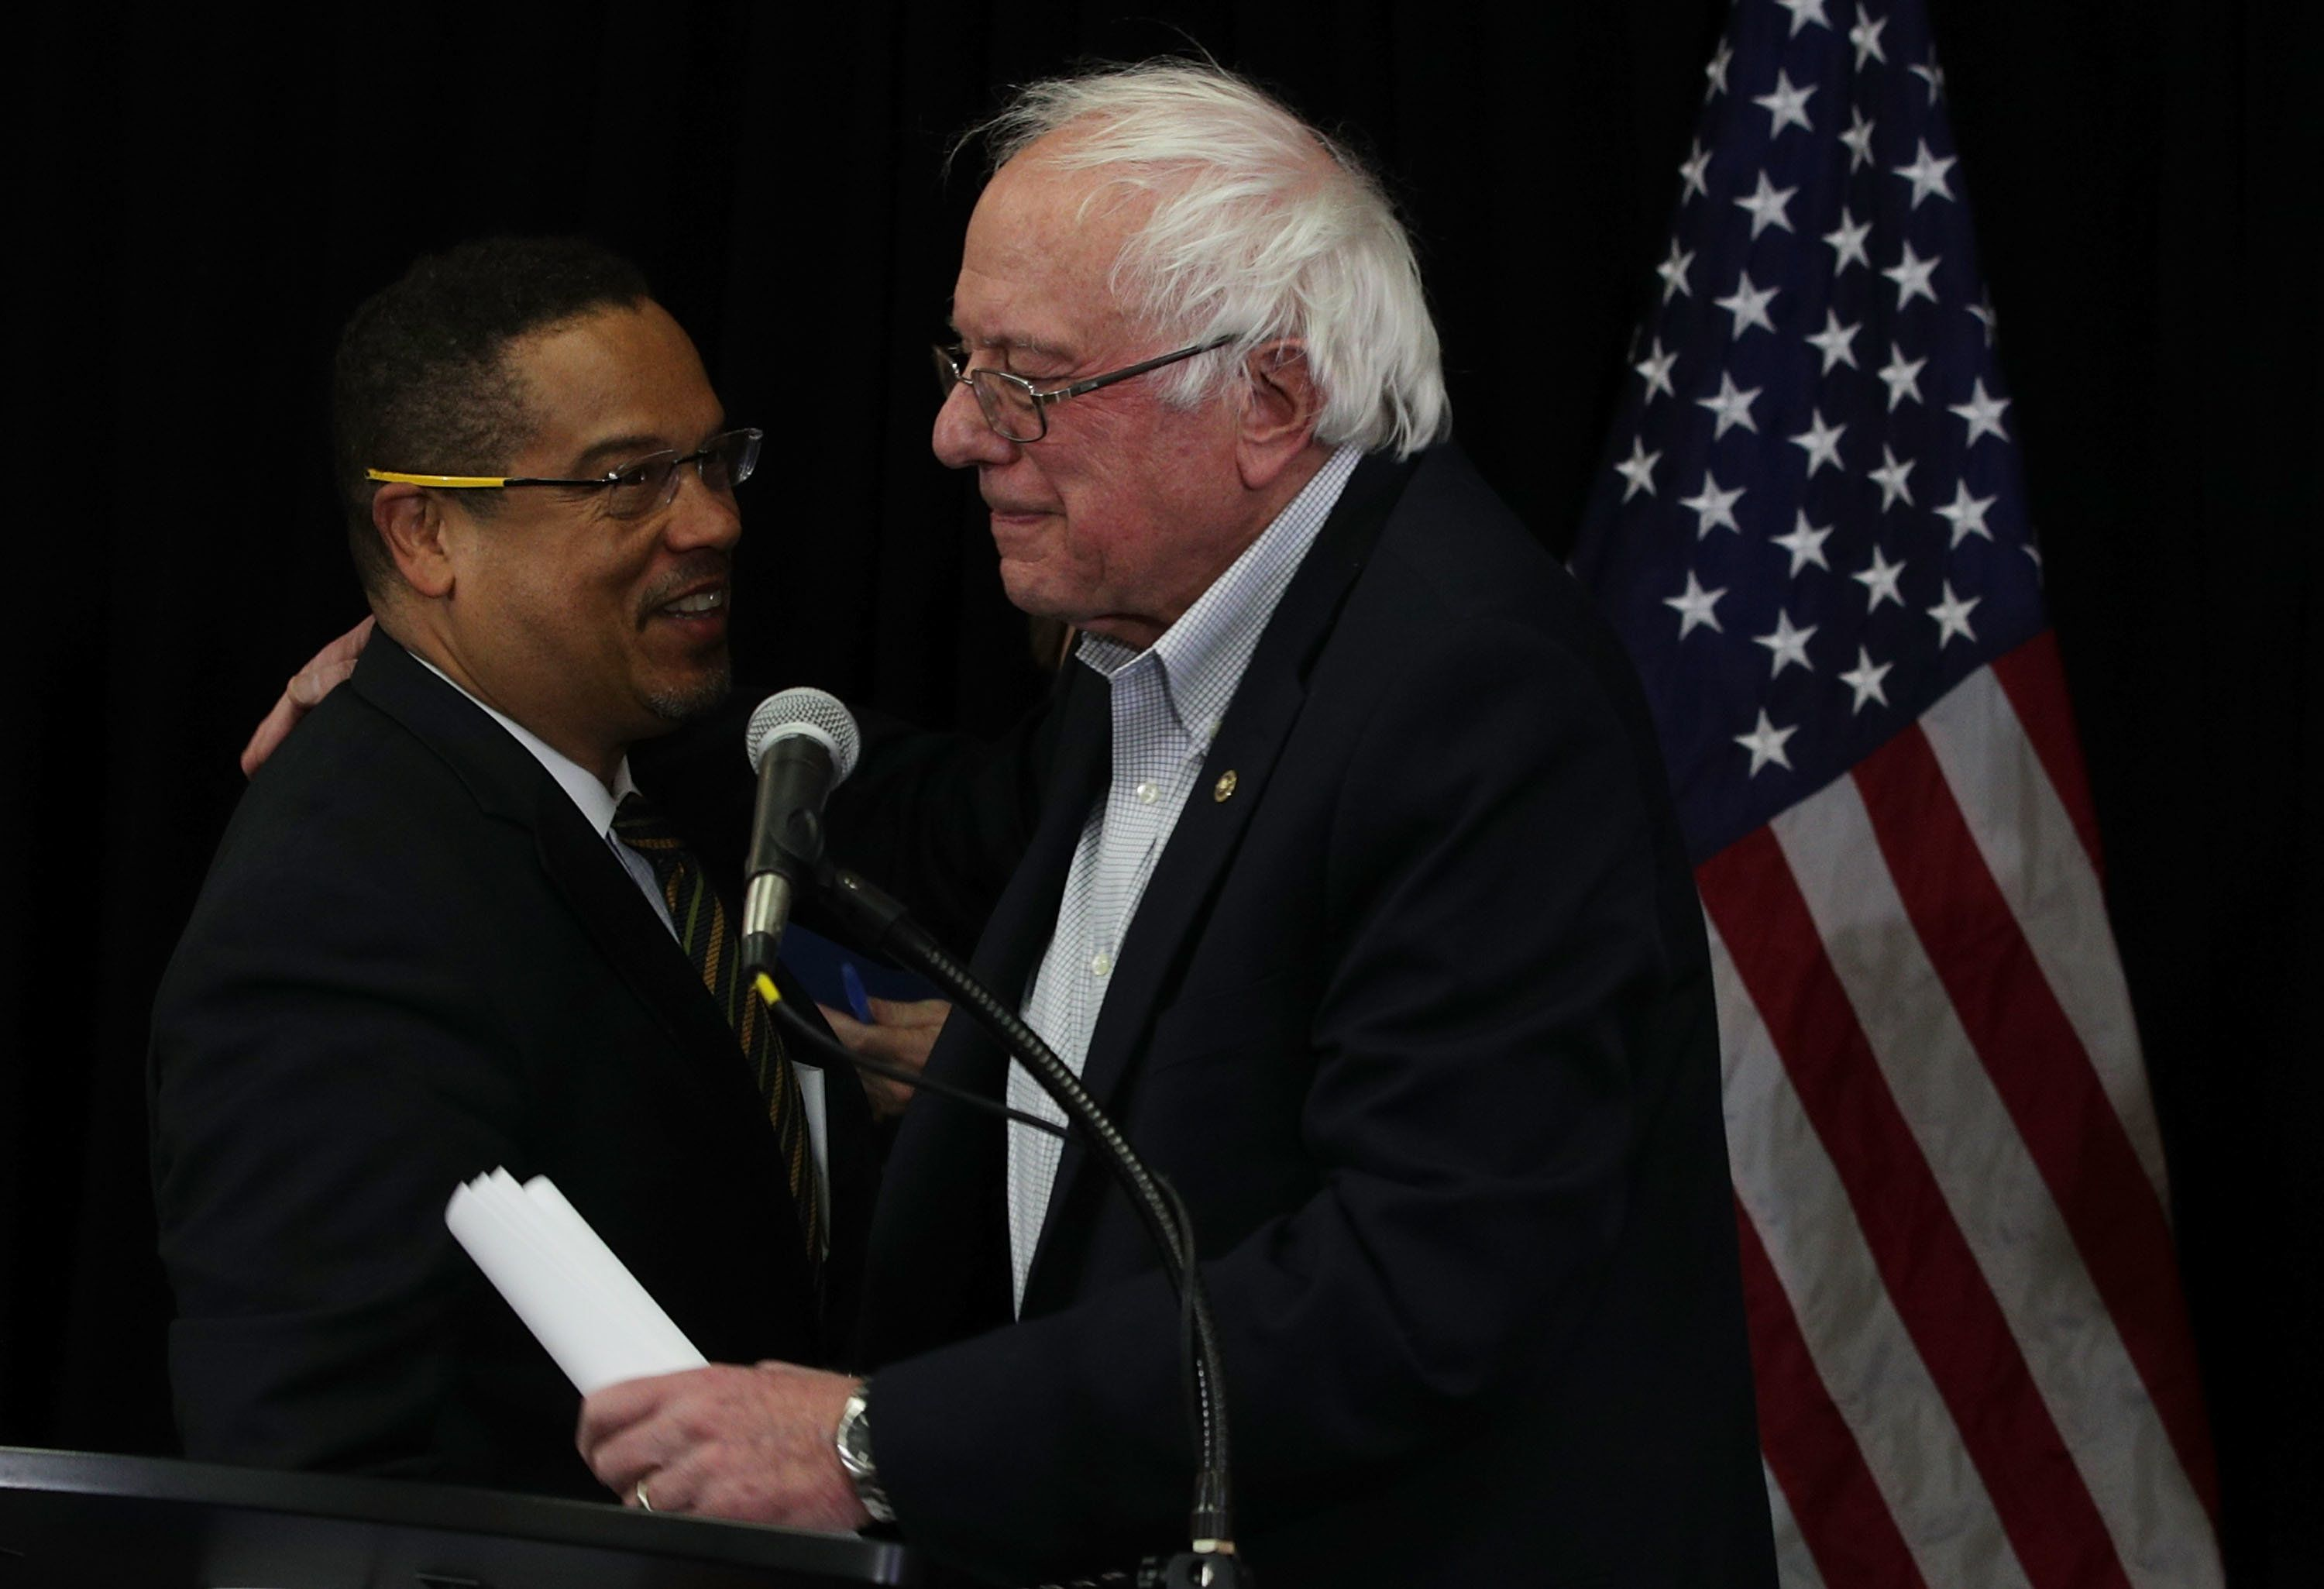 Rep. Keith Ellison (D-Minn.), left, and Sen. Bernie Sanders (I-Vt.) embrace during an event at the headquarters of American F